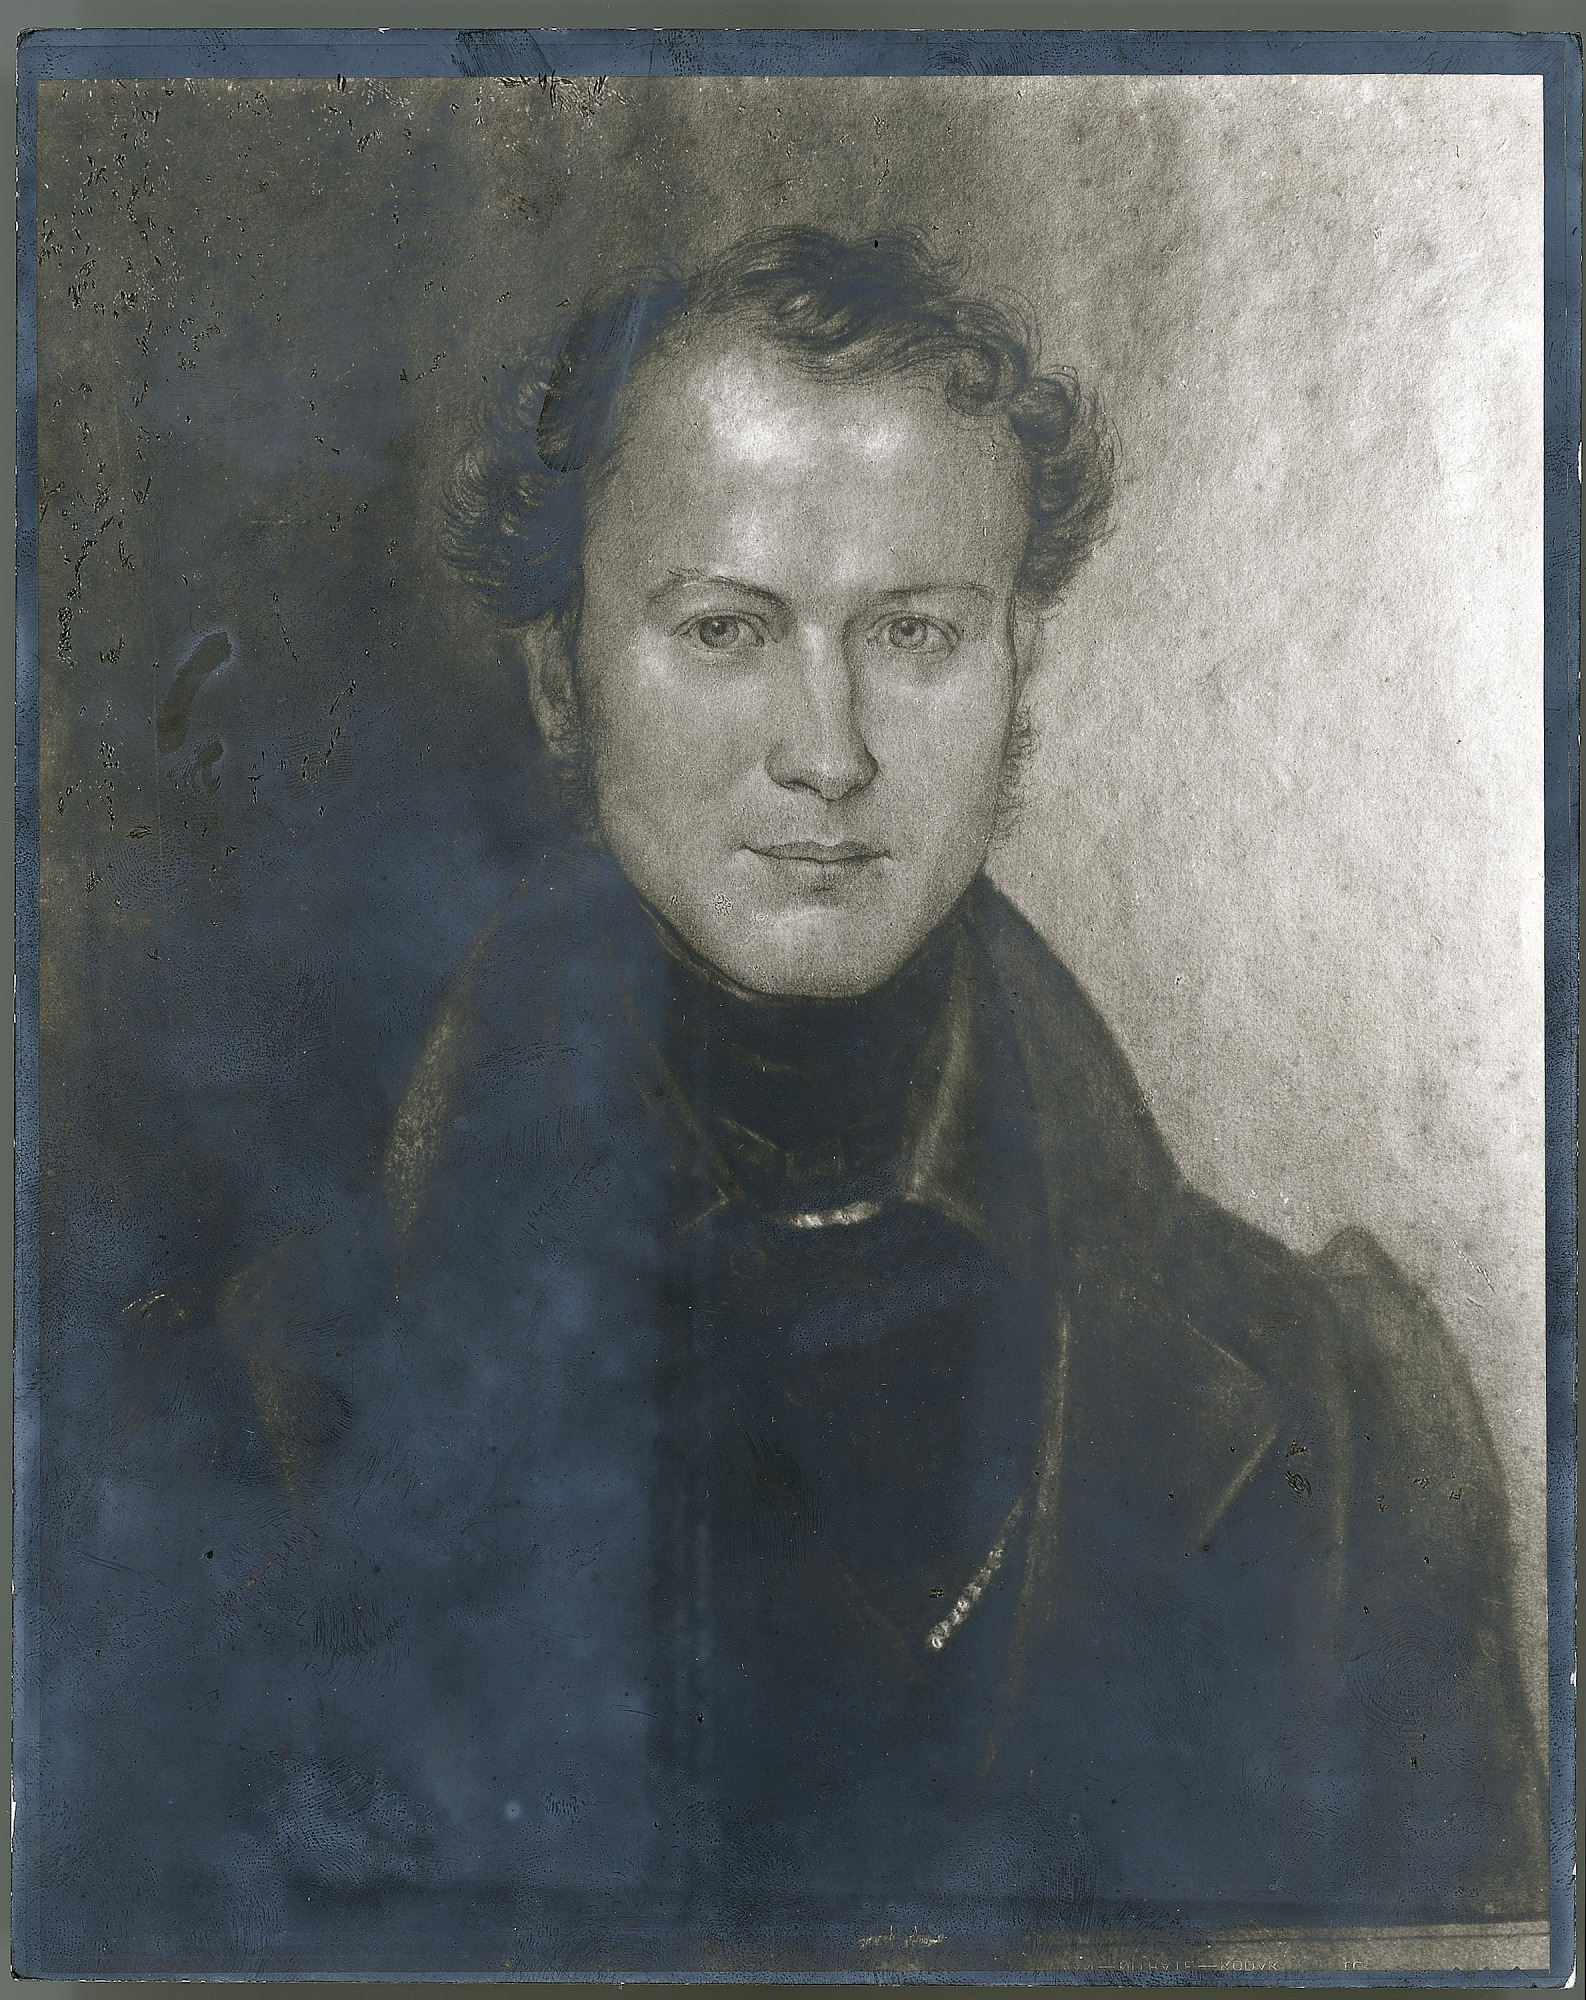 Portrait of William Duncan Brackenridge, a naturalist on the United States Exploring Expedition. Smithsonian Institution Archives, negative number 2005-1378.